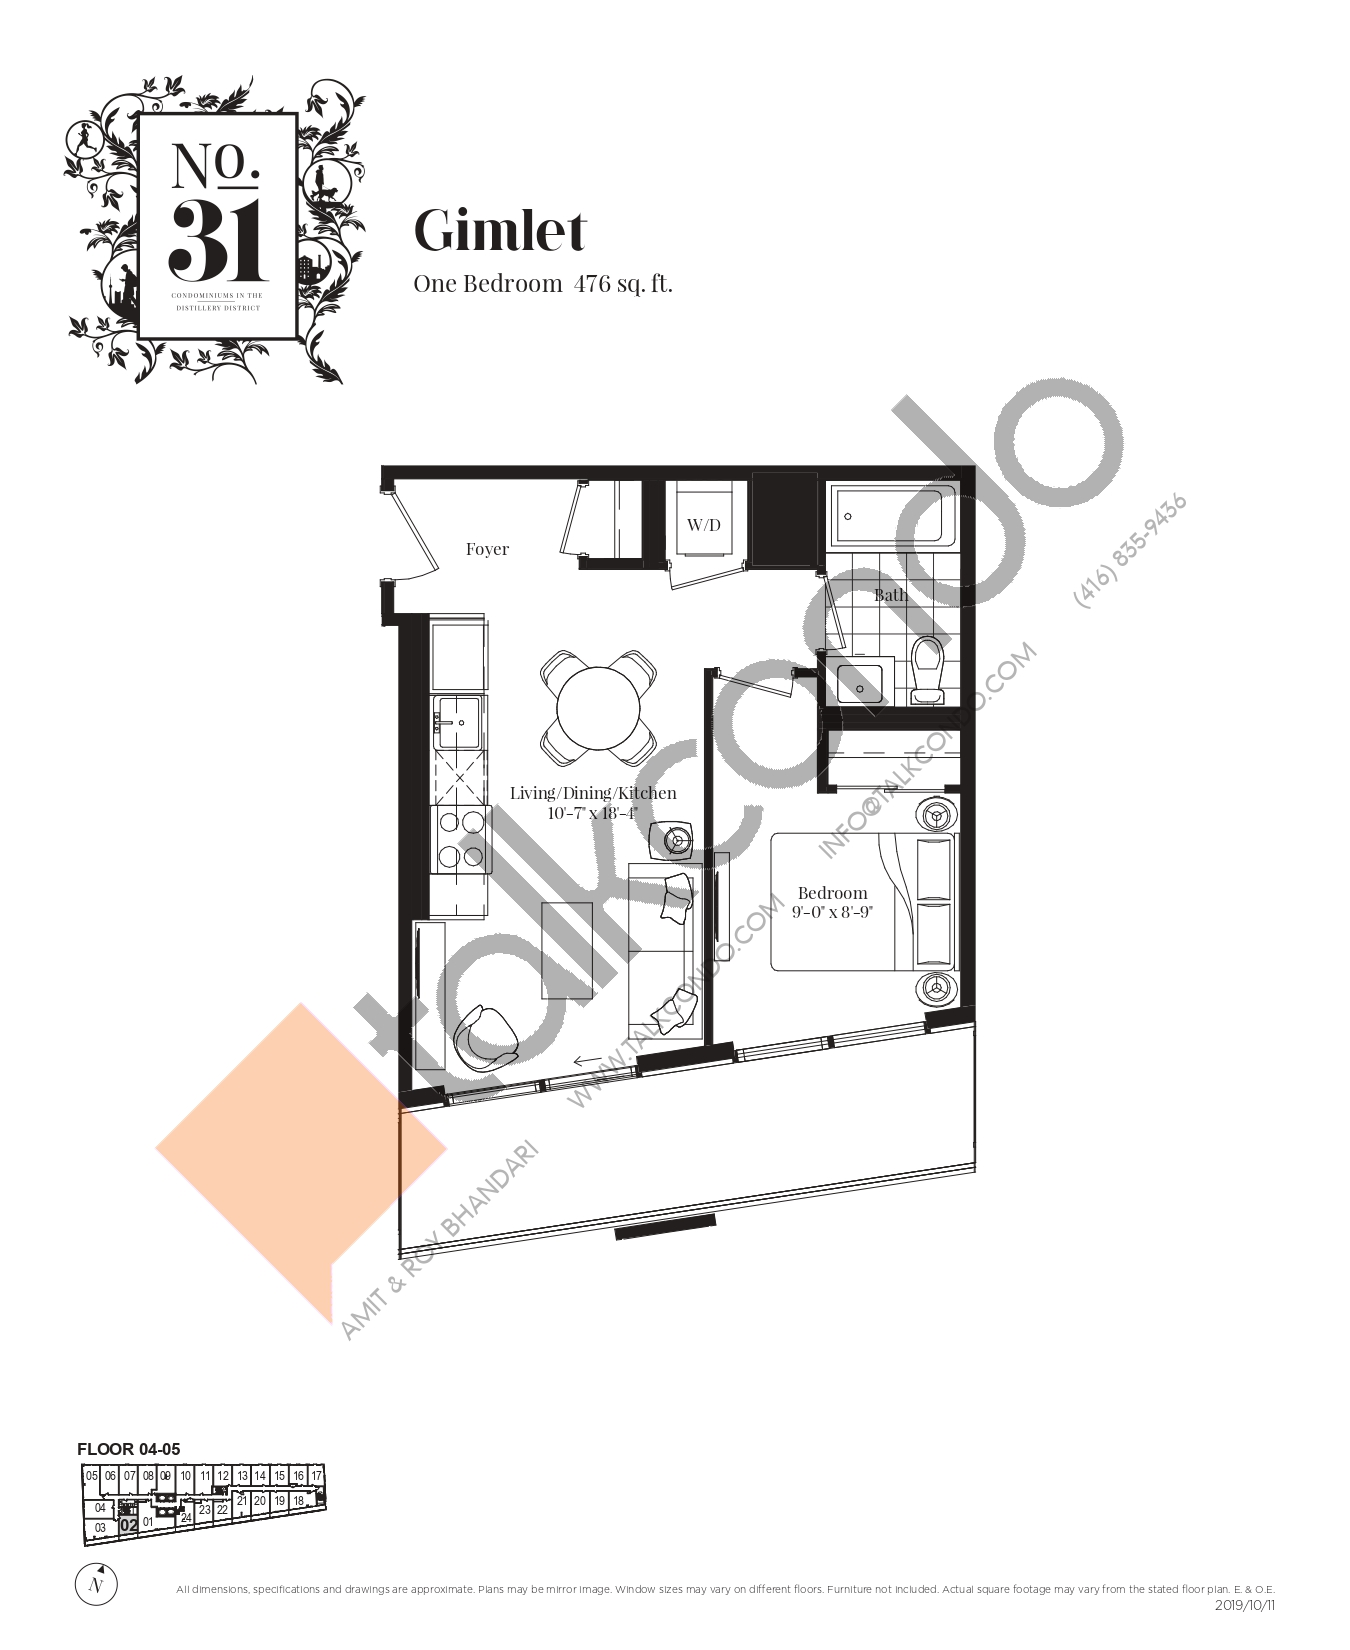 Gimlet Floor Plan at No. 31 Condos - 476 sq.ft